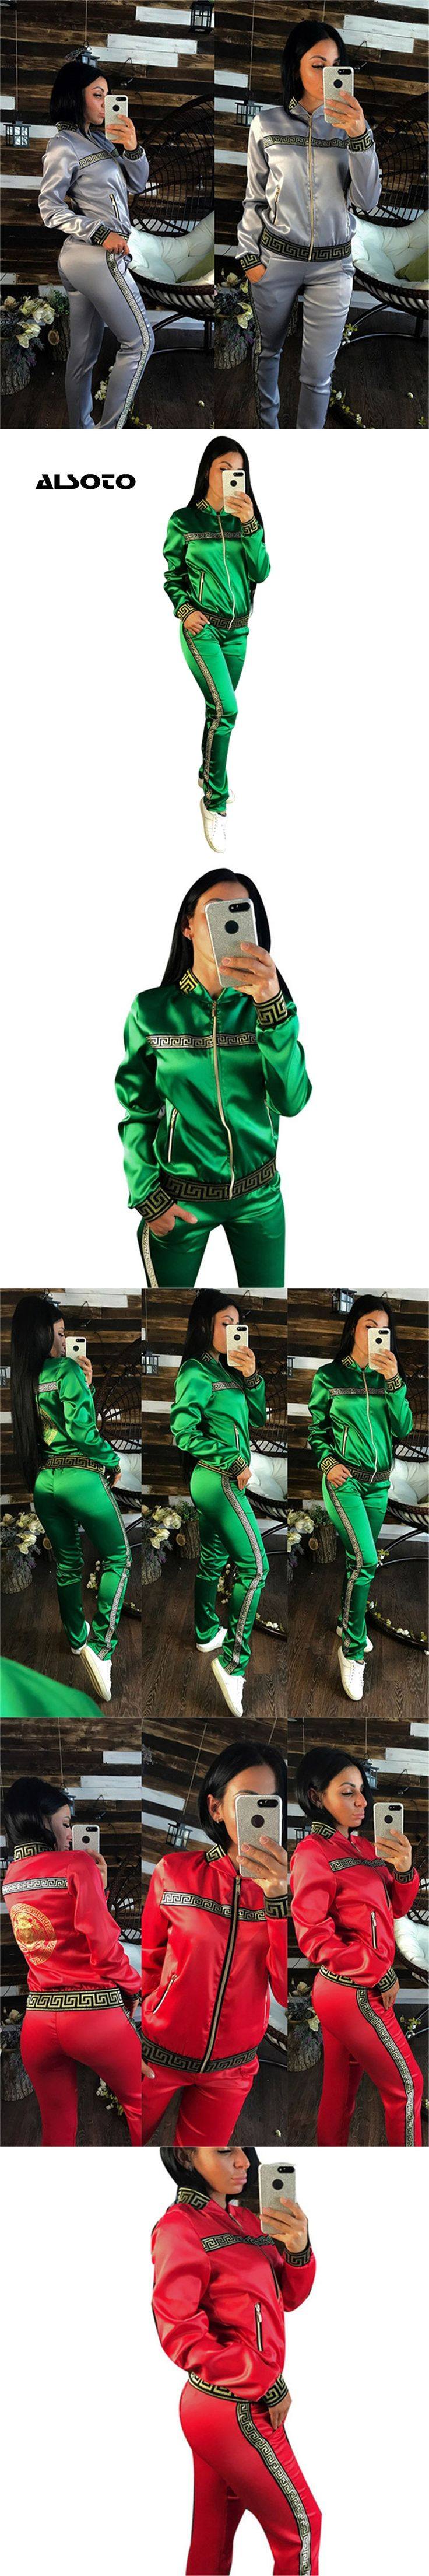 2017 New Fashion Autumn Women O-neck Sporting Suit Long Sleeve Tops+Pant Tracksuit Two Piece Set Zipper Ladies Sportswear Sets